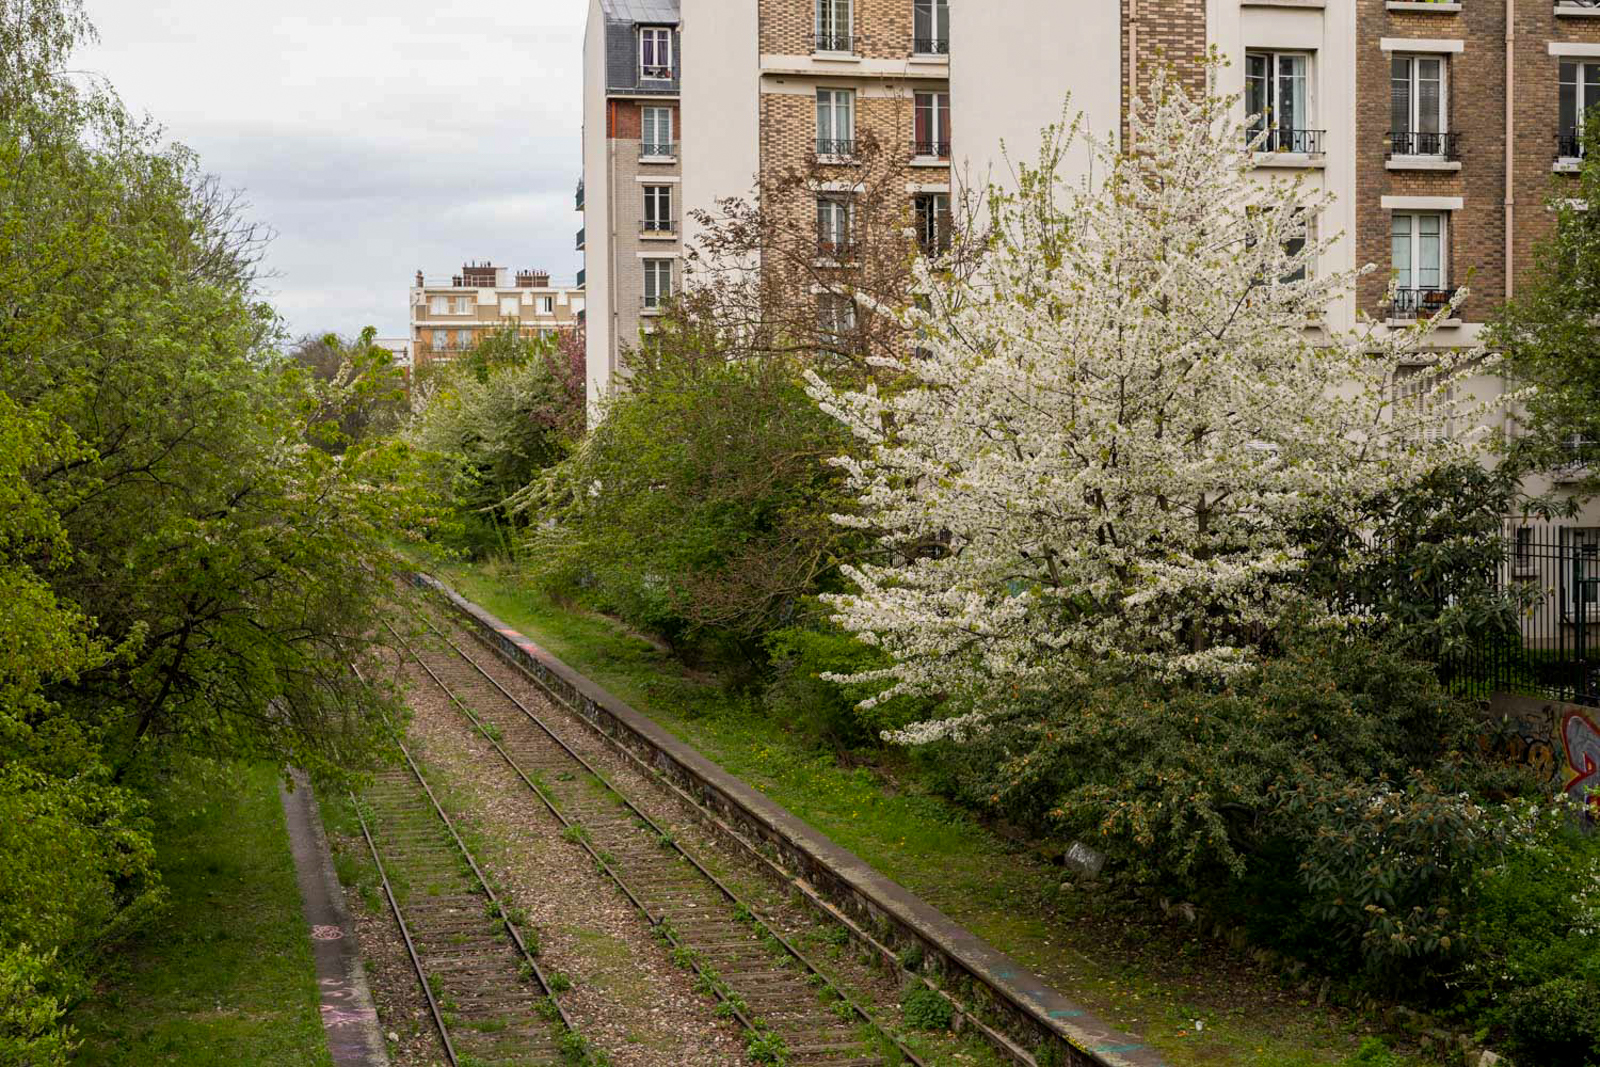 paris 20, balade paris 20, paris underground, paris alternatif, paris insolite, découvrir paris 20, que faire paris 20, balade originale paris 20, petite ceinture, petite ceinture paris